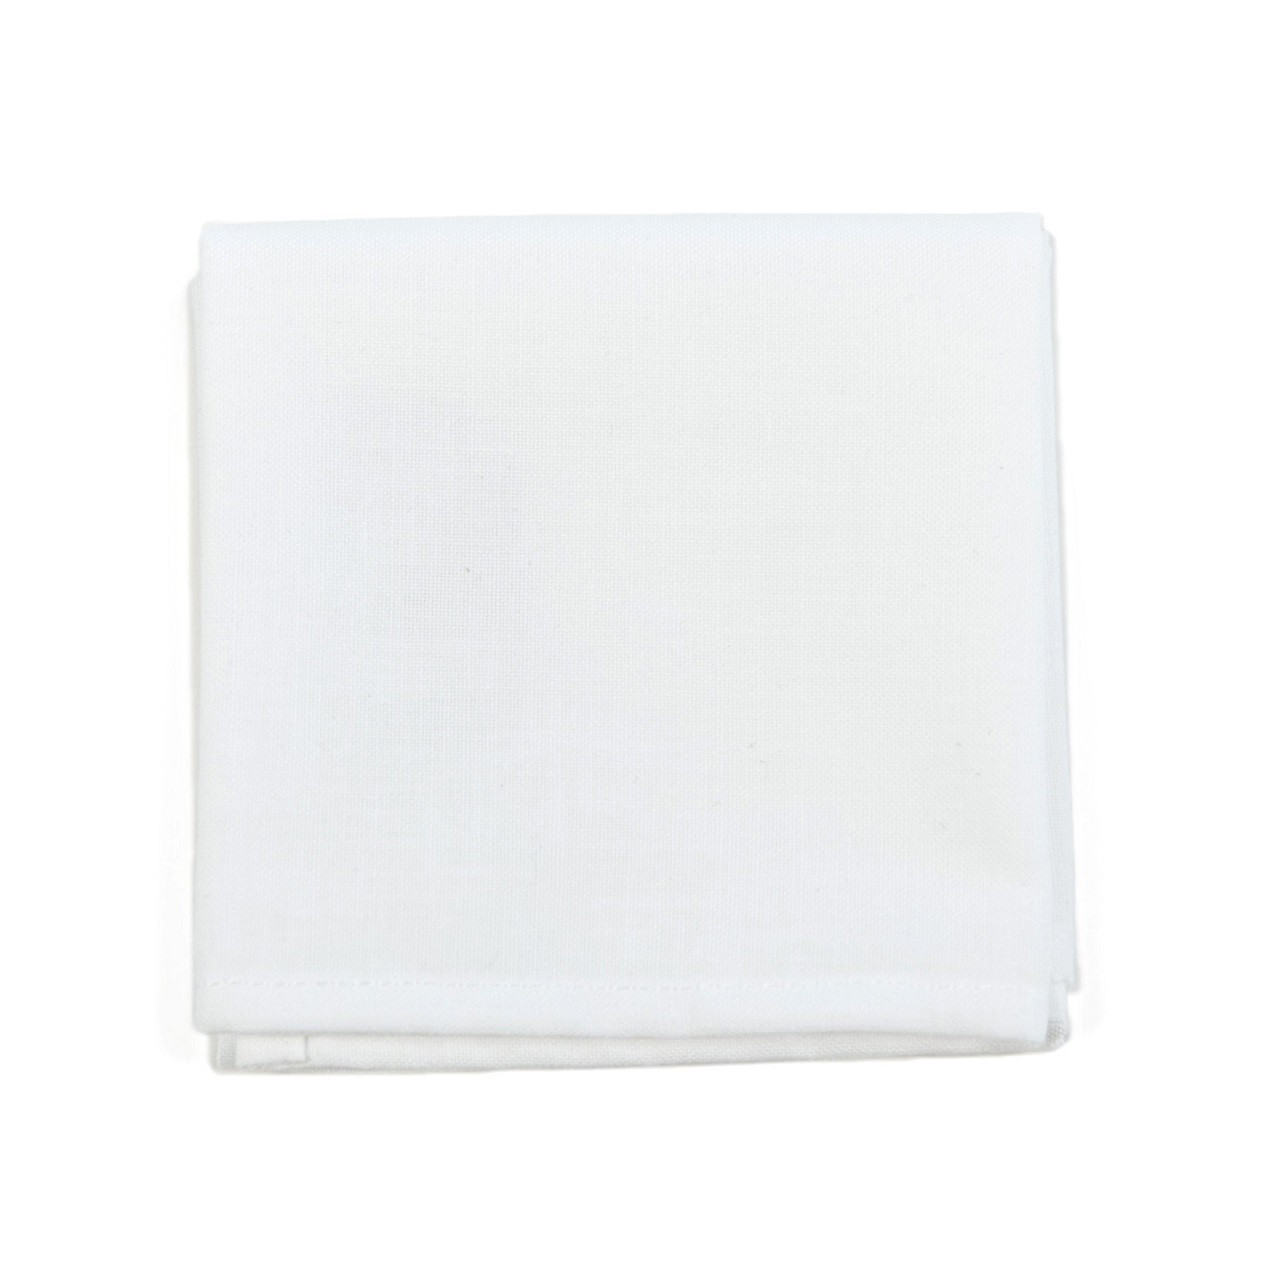 Men's White Handkerchiefs. Are men's white handkerchiefs a dying breed? When was the last time you saw a man with a white handkerchief? I thought about white handkerchiefs this weekend as I watched the Intern.. In the movie, one of the young interns asked Ben (older intern), why he always had a pocket handkerchief.